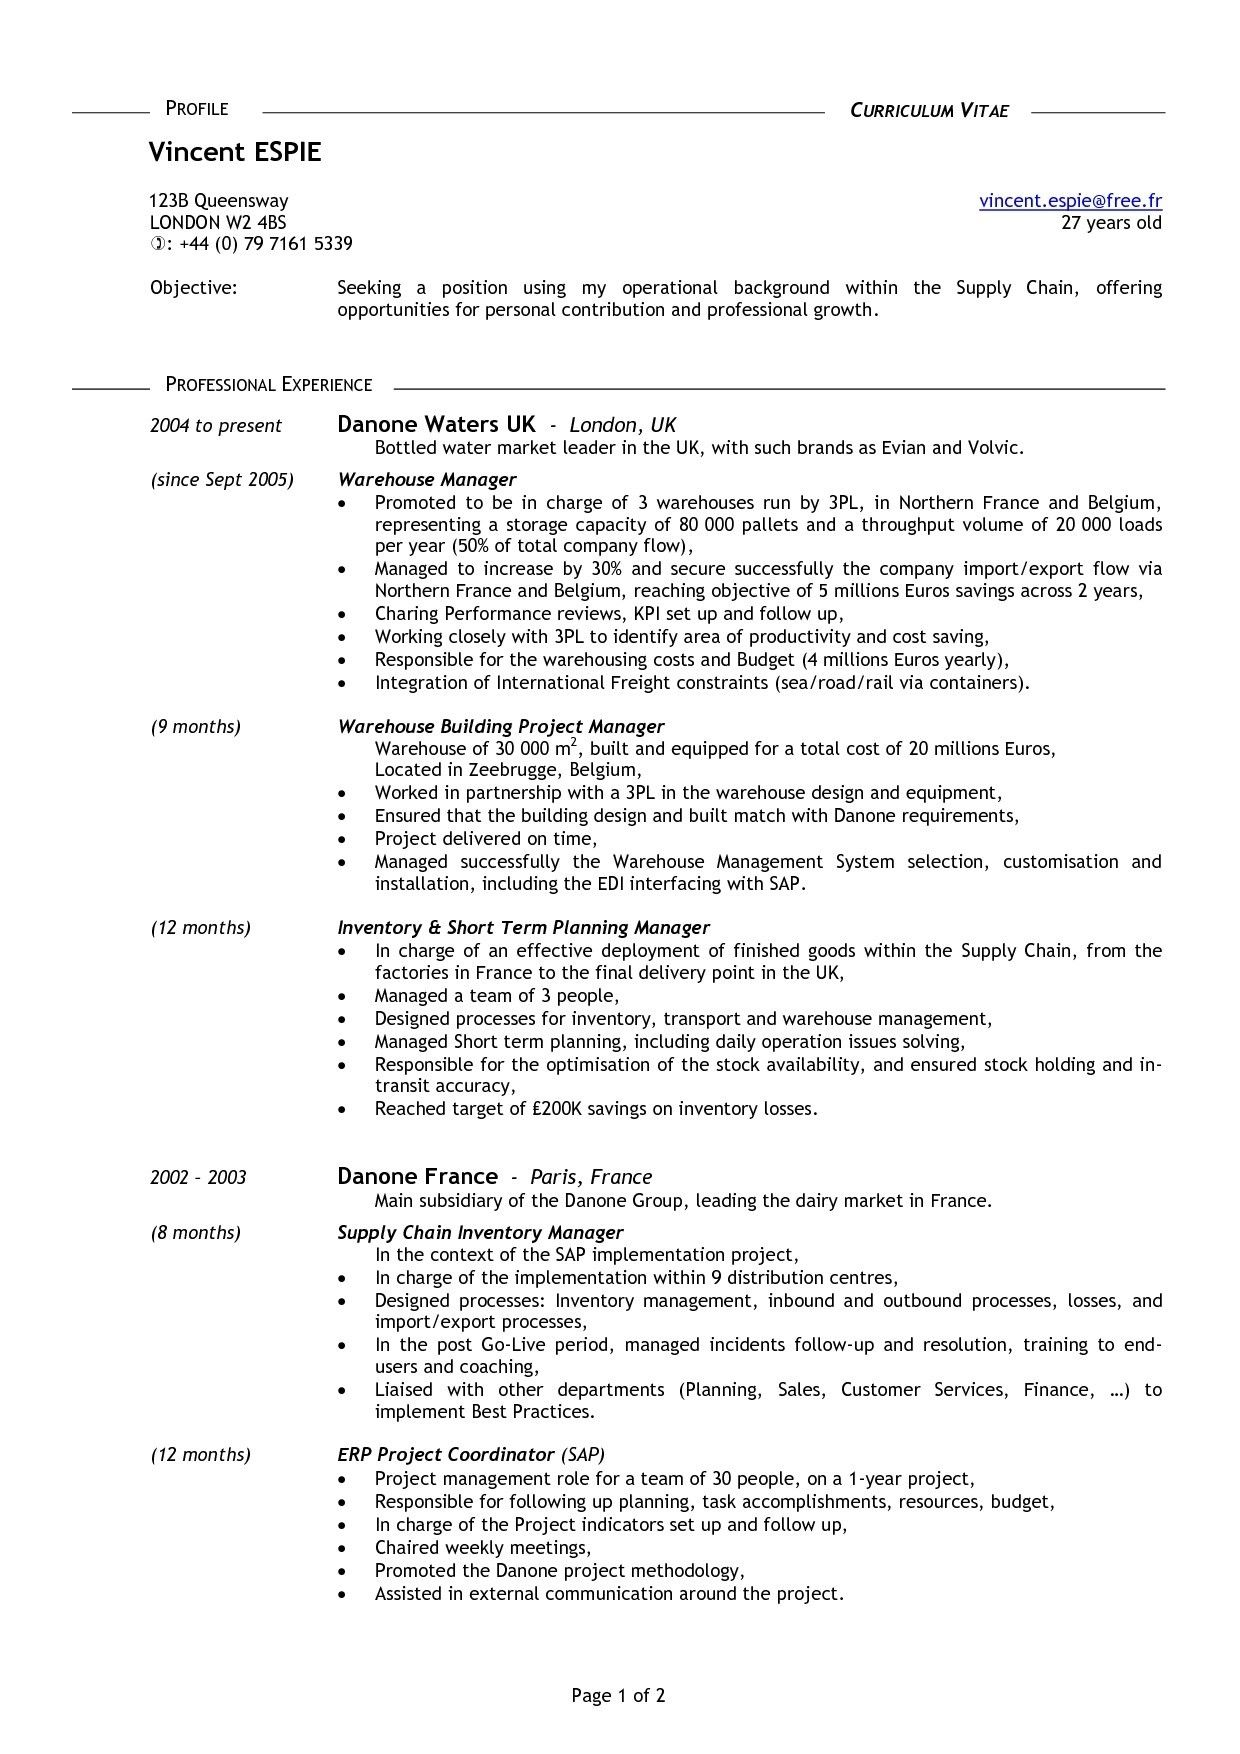 resume 16 year old no experience